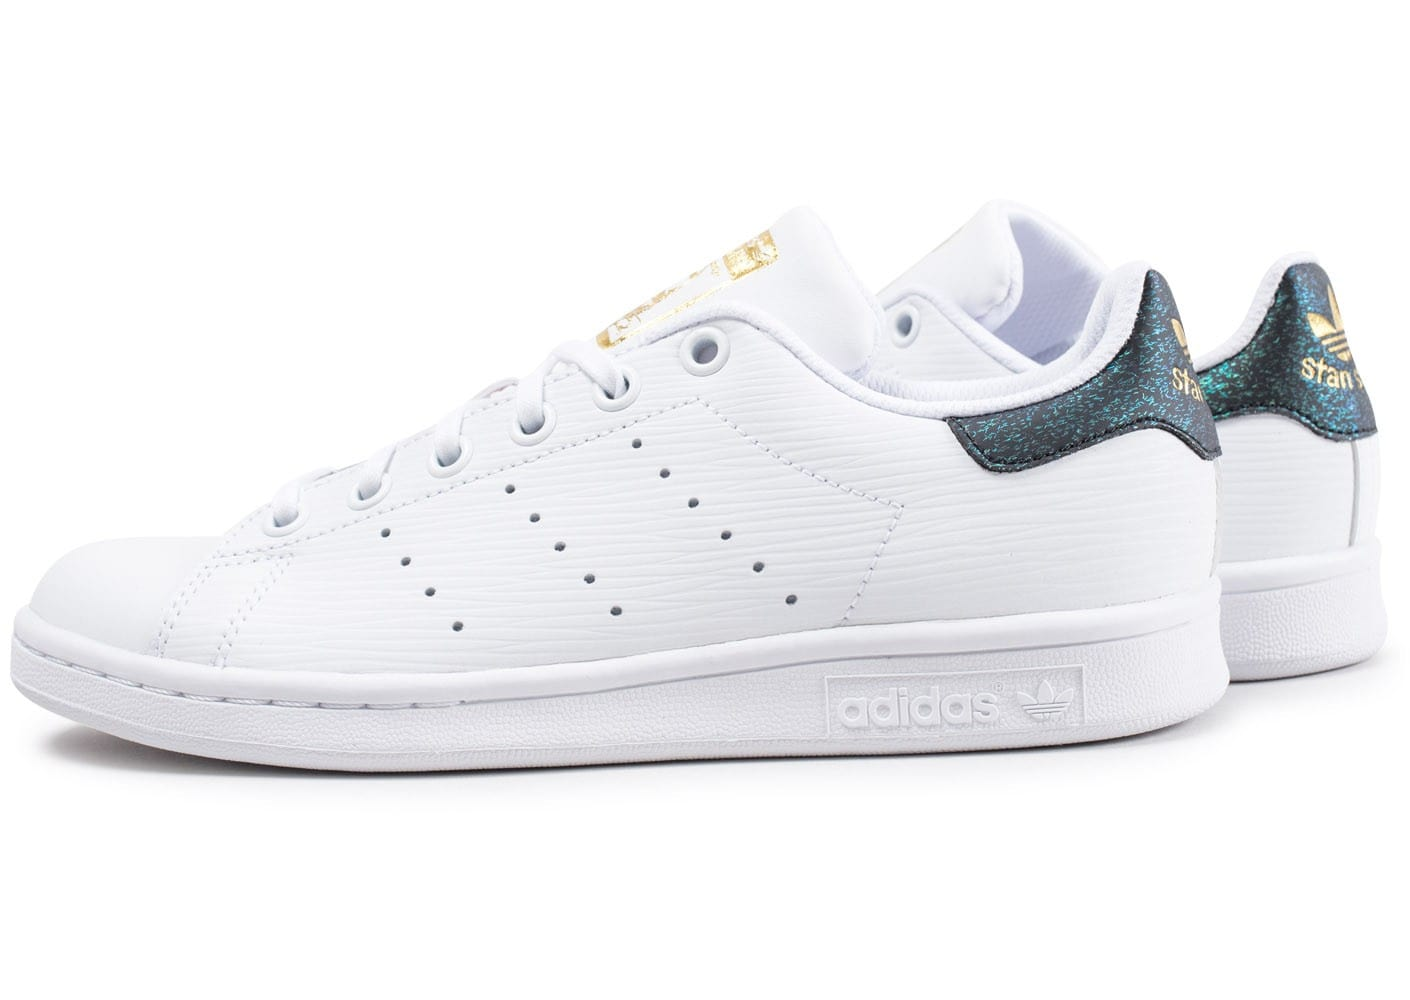 adidas stan smith iridescent